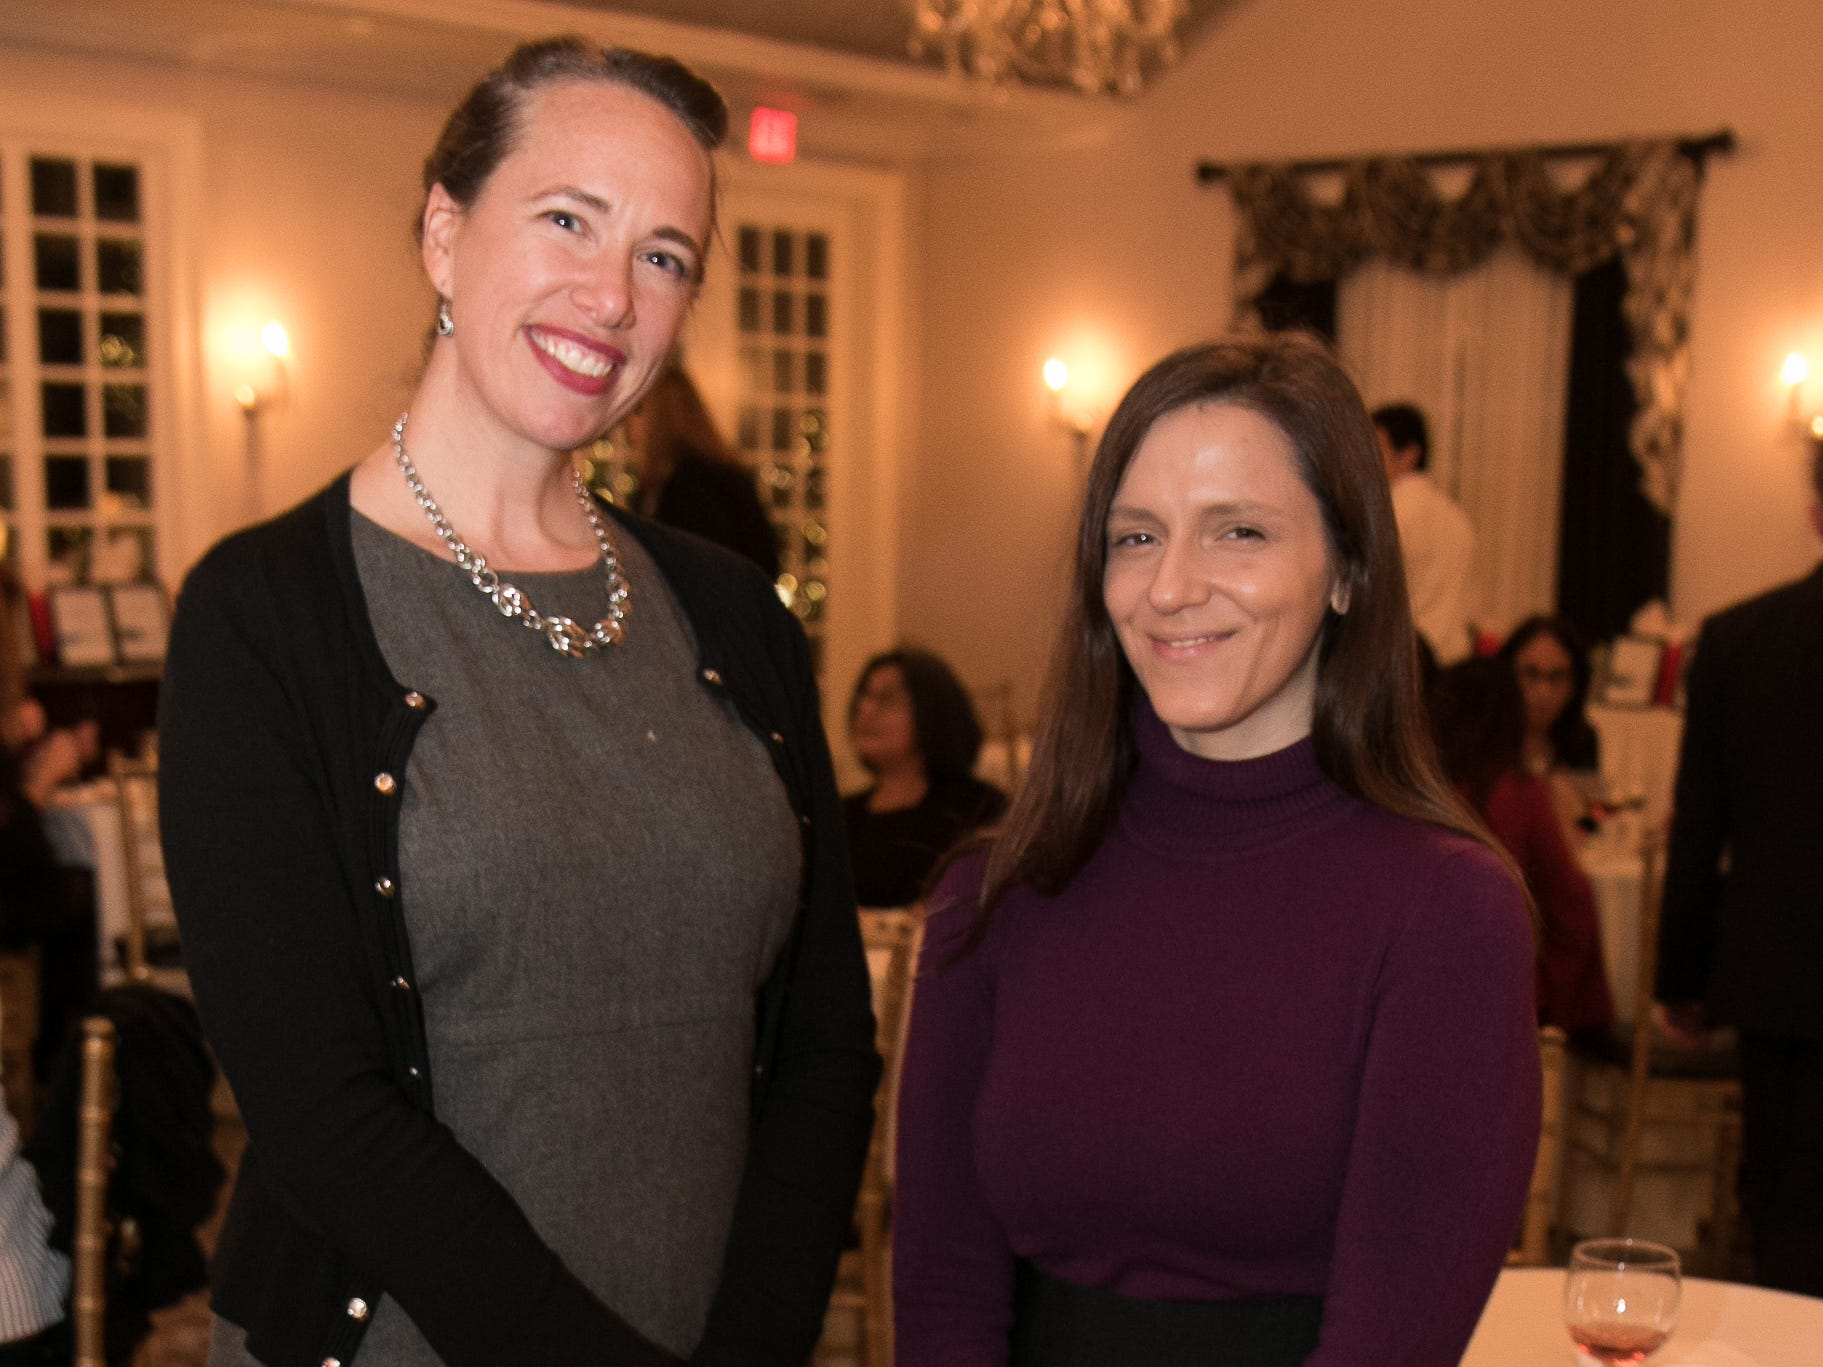 Kimberly Malone, Ramya Elsaleh. The Bergen Volunteer Center celebrated its 10th anniversary of the Bergen LEADS program at The Hearts of Gold Dinner and Auction at the Stony Hill Inn in Hackensack. 11/08/2018